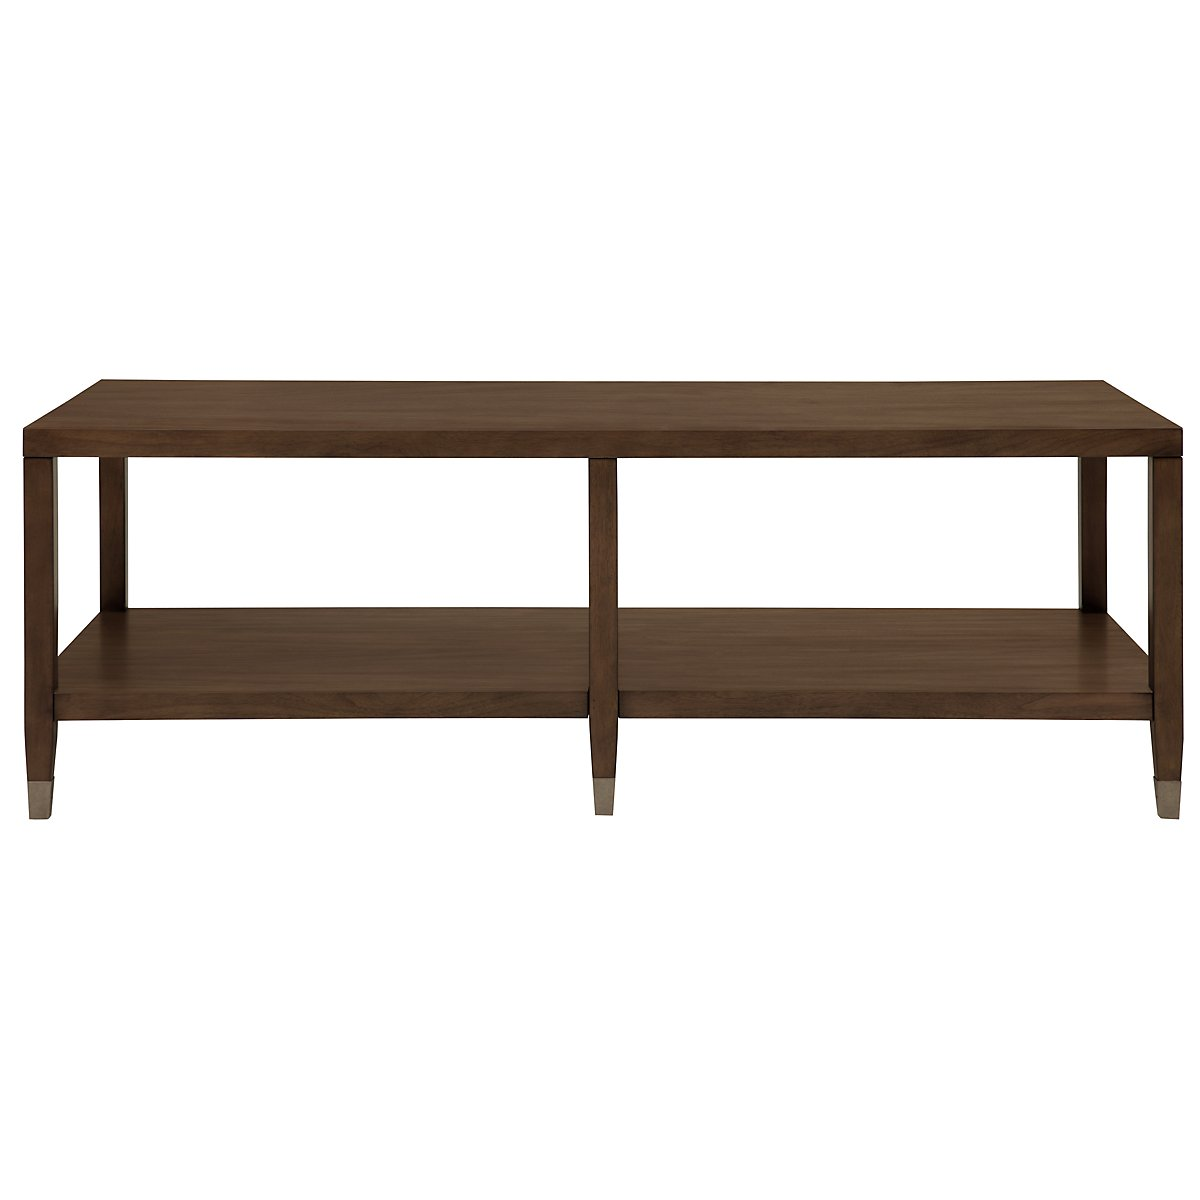 Preston Mid Tone Rectangular Coffee Table